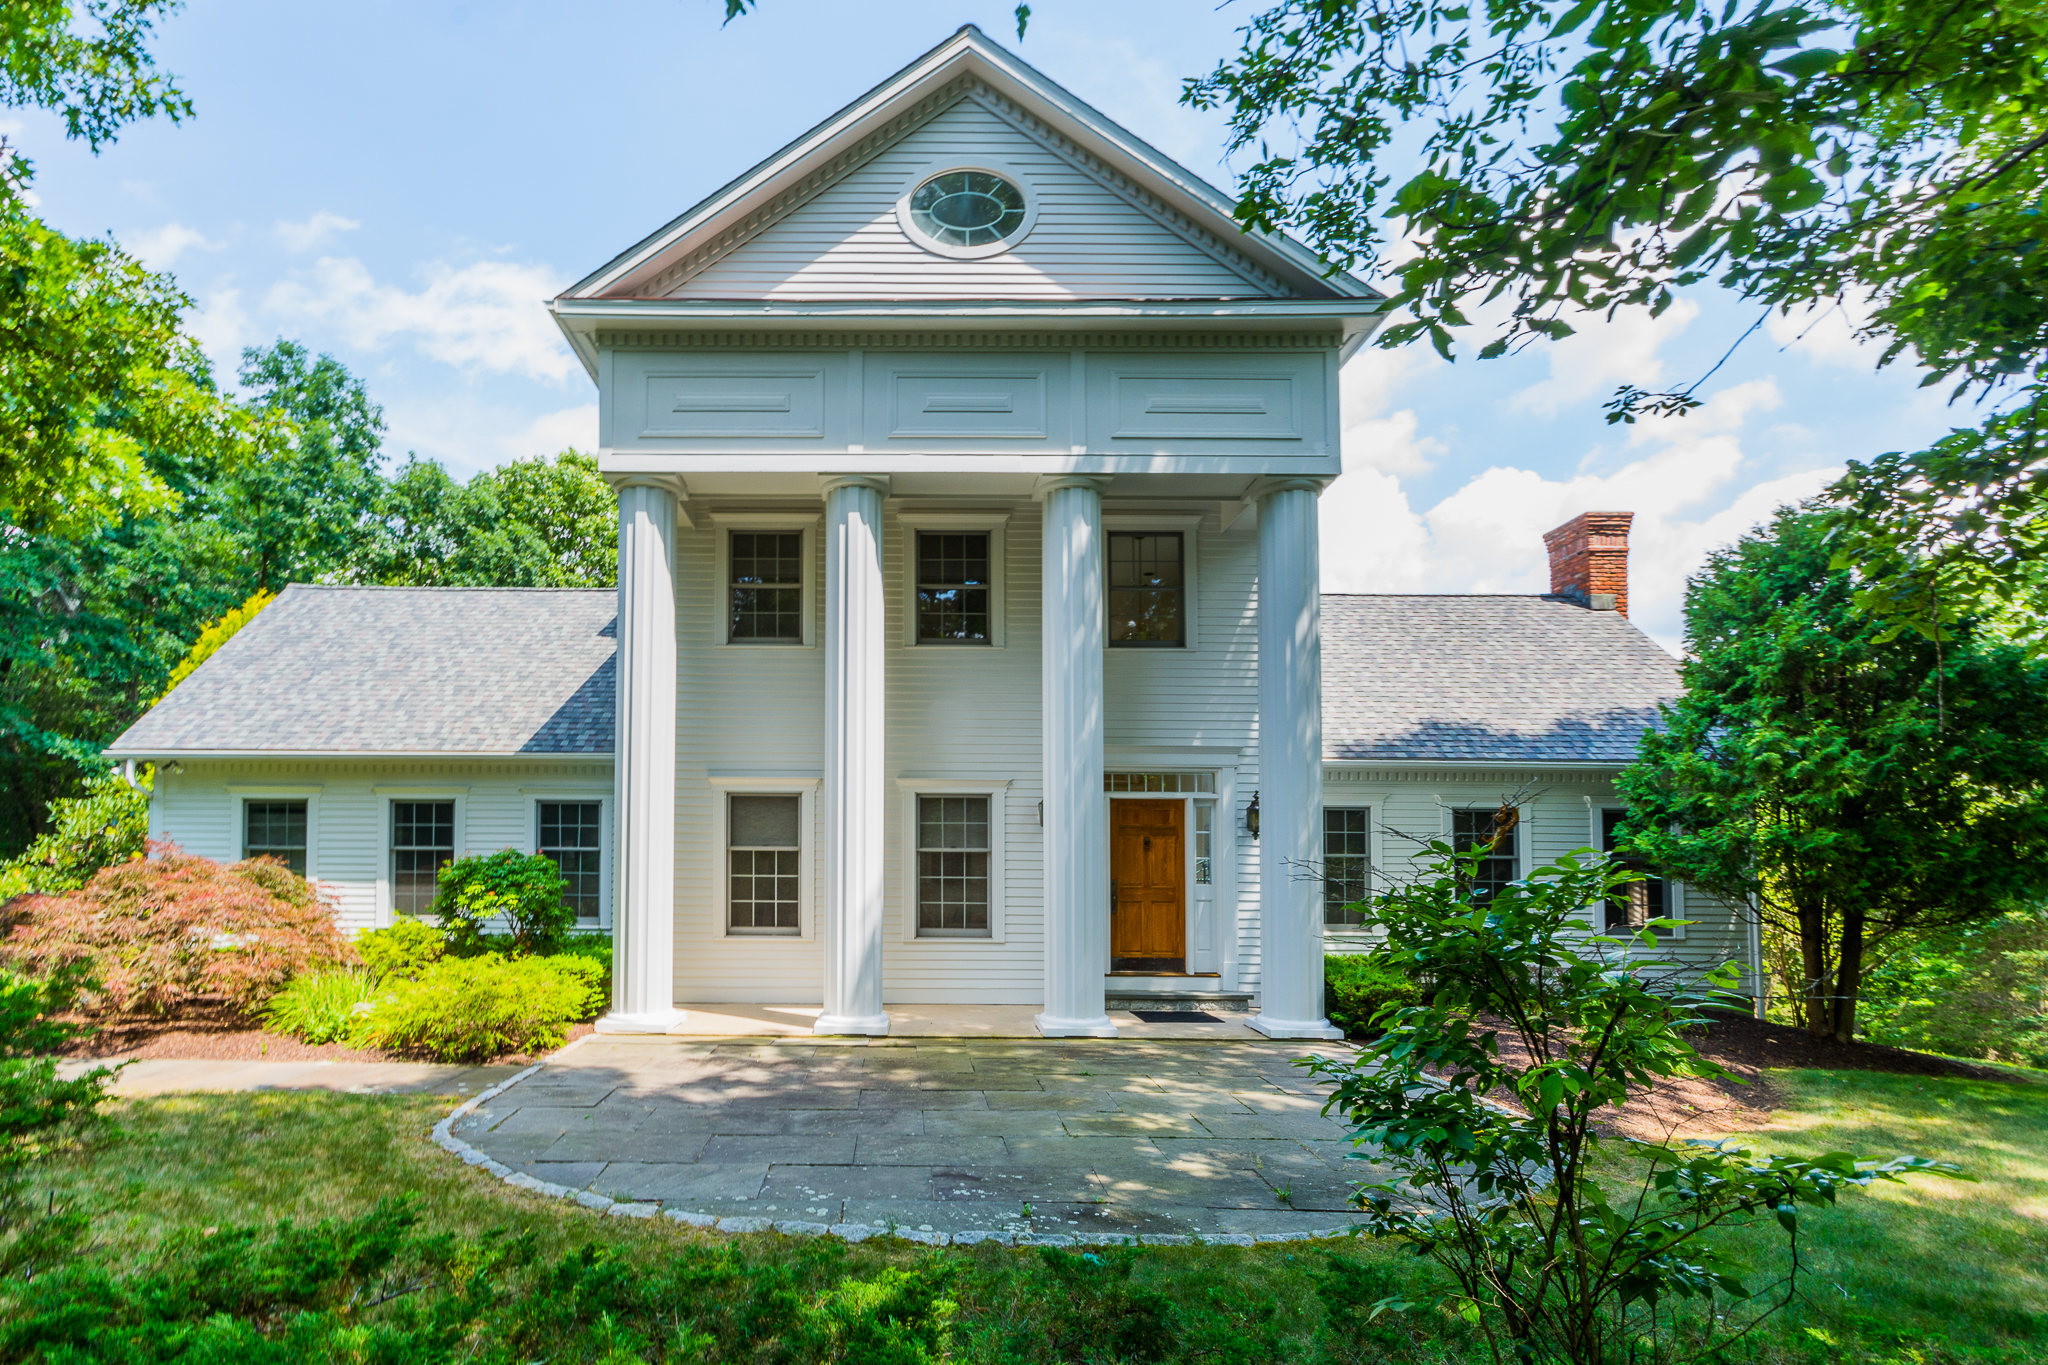 Single Family Home for Sale at Stunning Greek Revival Estate 3 High Fields Drive Danbury, Connecticut, 06811 United States